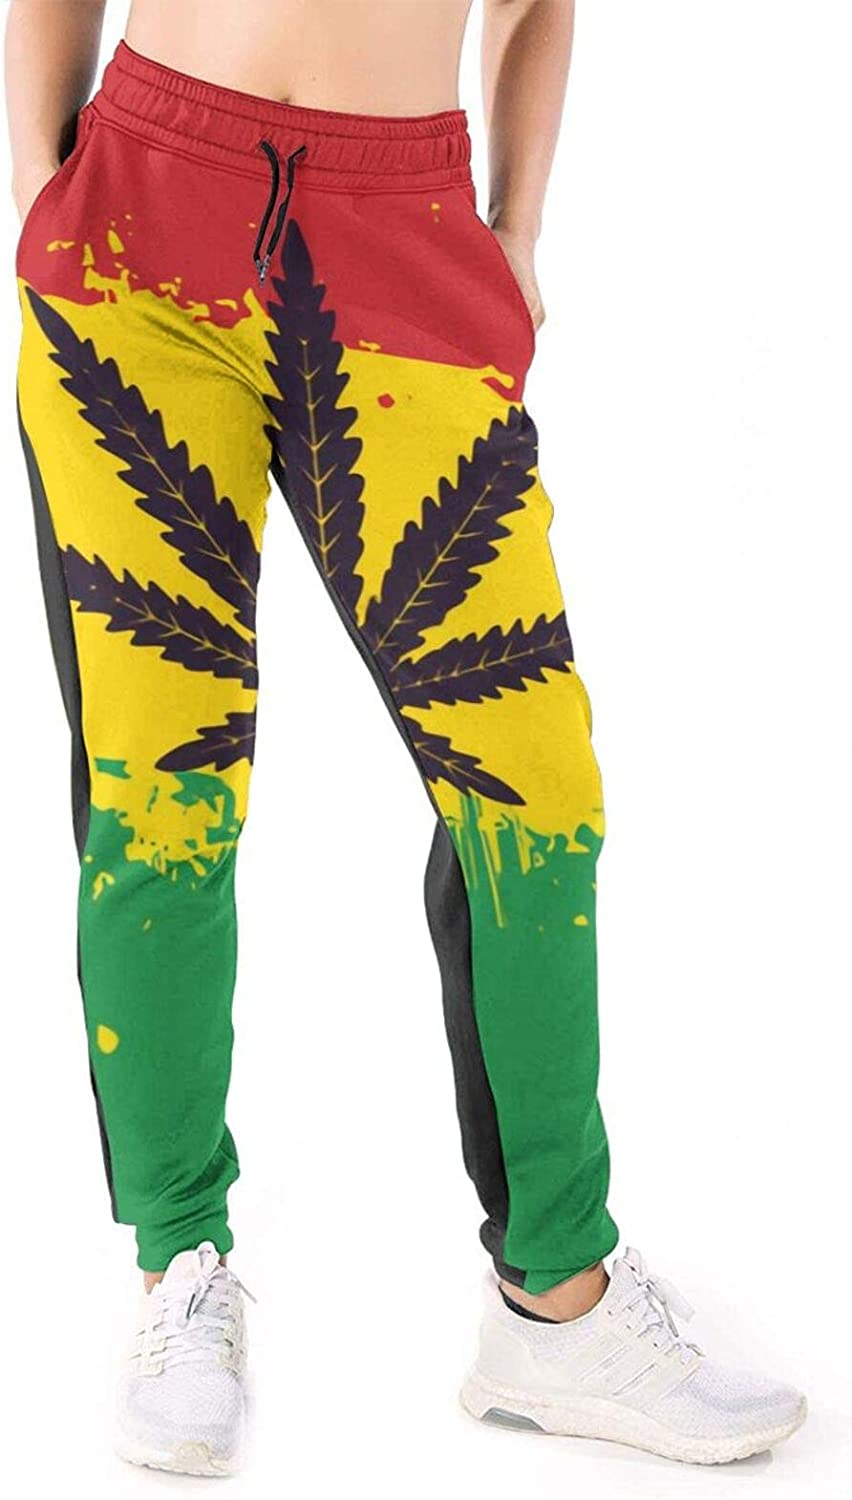 LONEA Women Joggers Pants Rasta Flag with Marijuana Cannabis Athletic Sweatpants with Pockets Casual Trousers Baggy